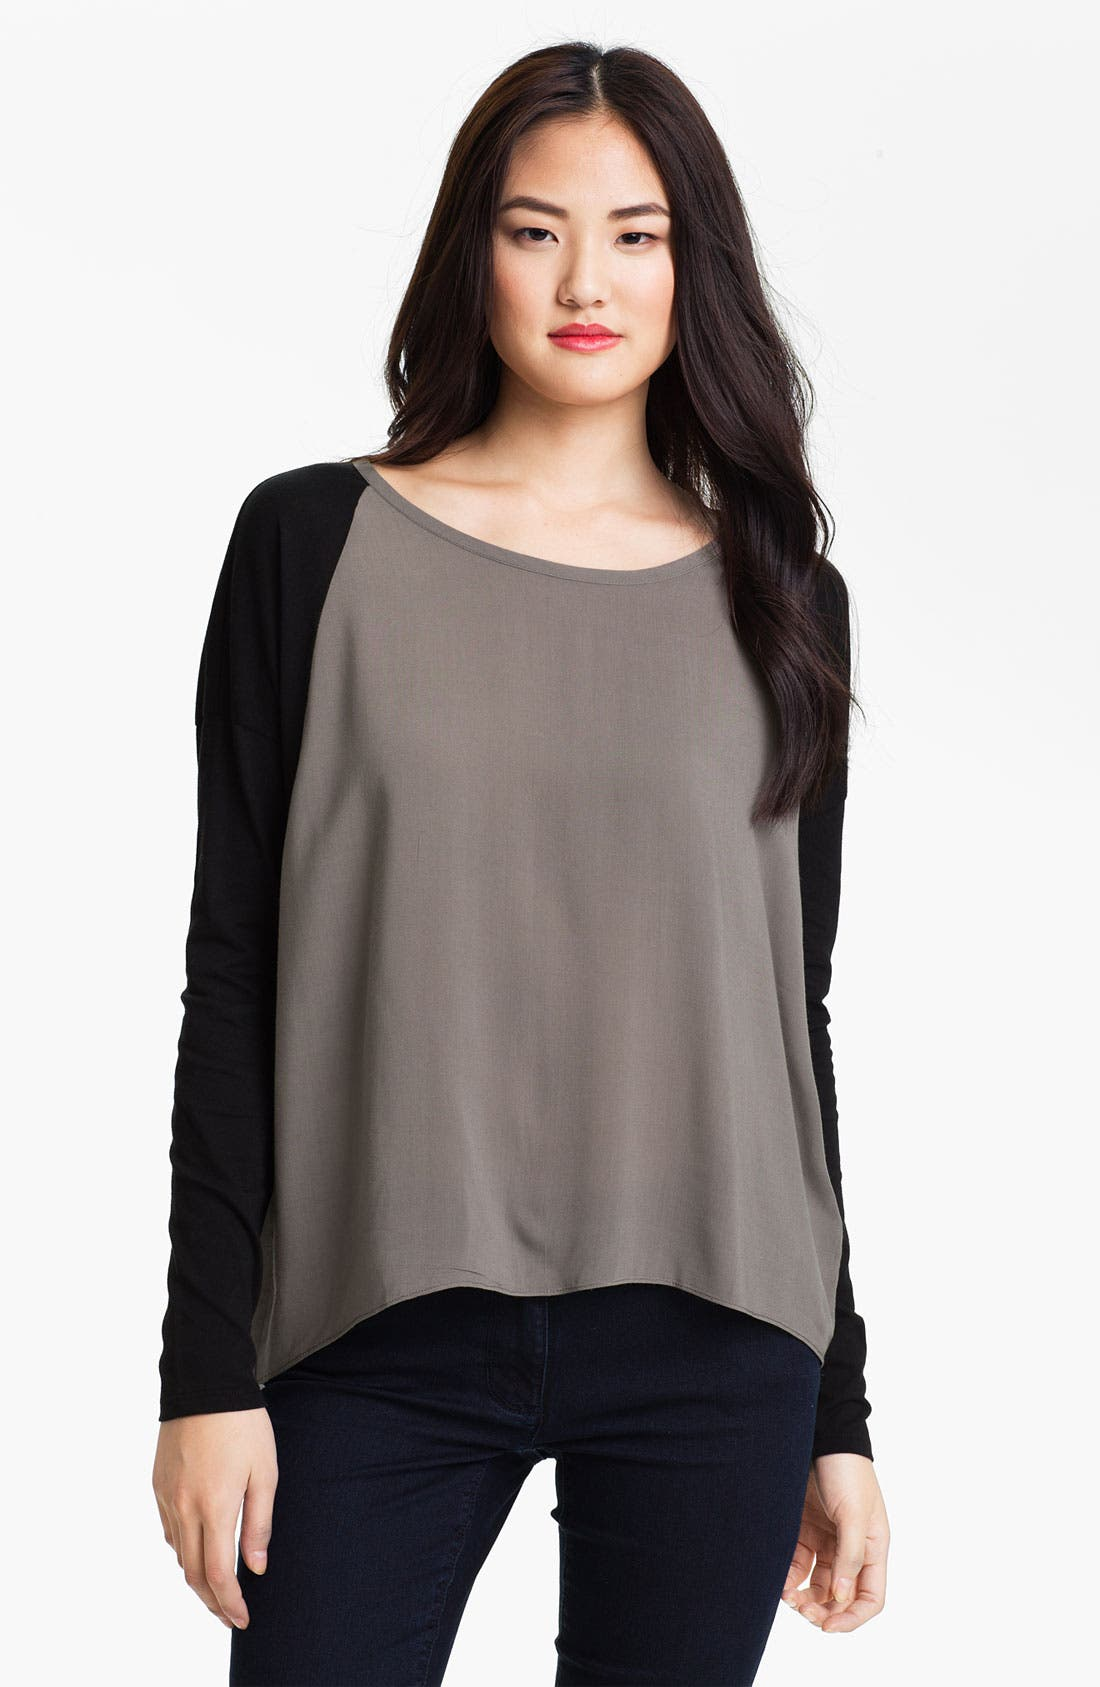 Alternate Image 1 Selected - Two by Vince Camuto Colorblock Mix Media Tee